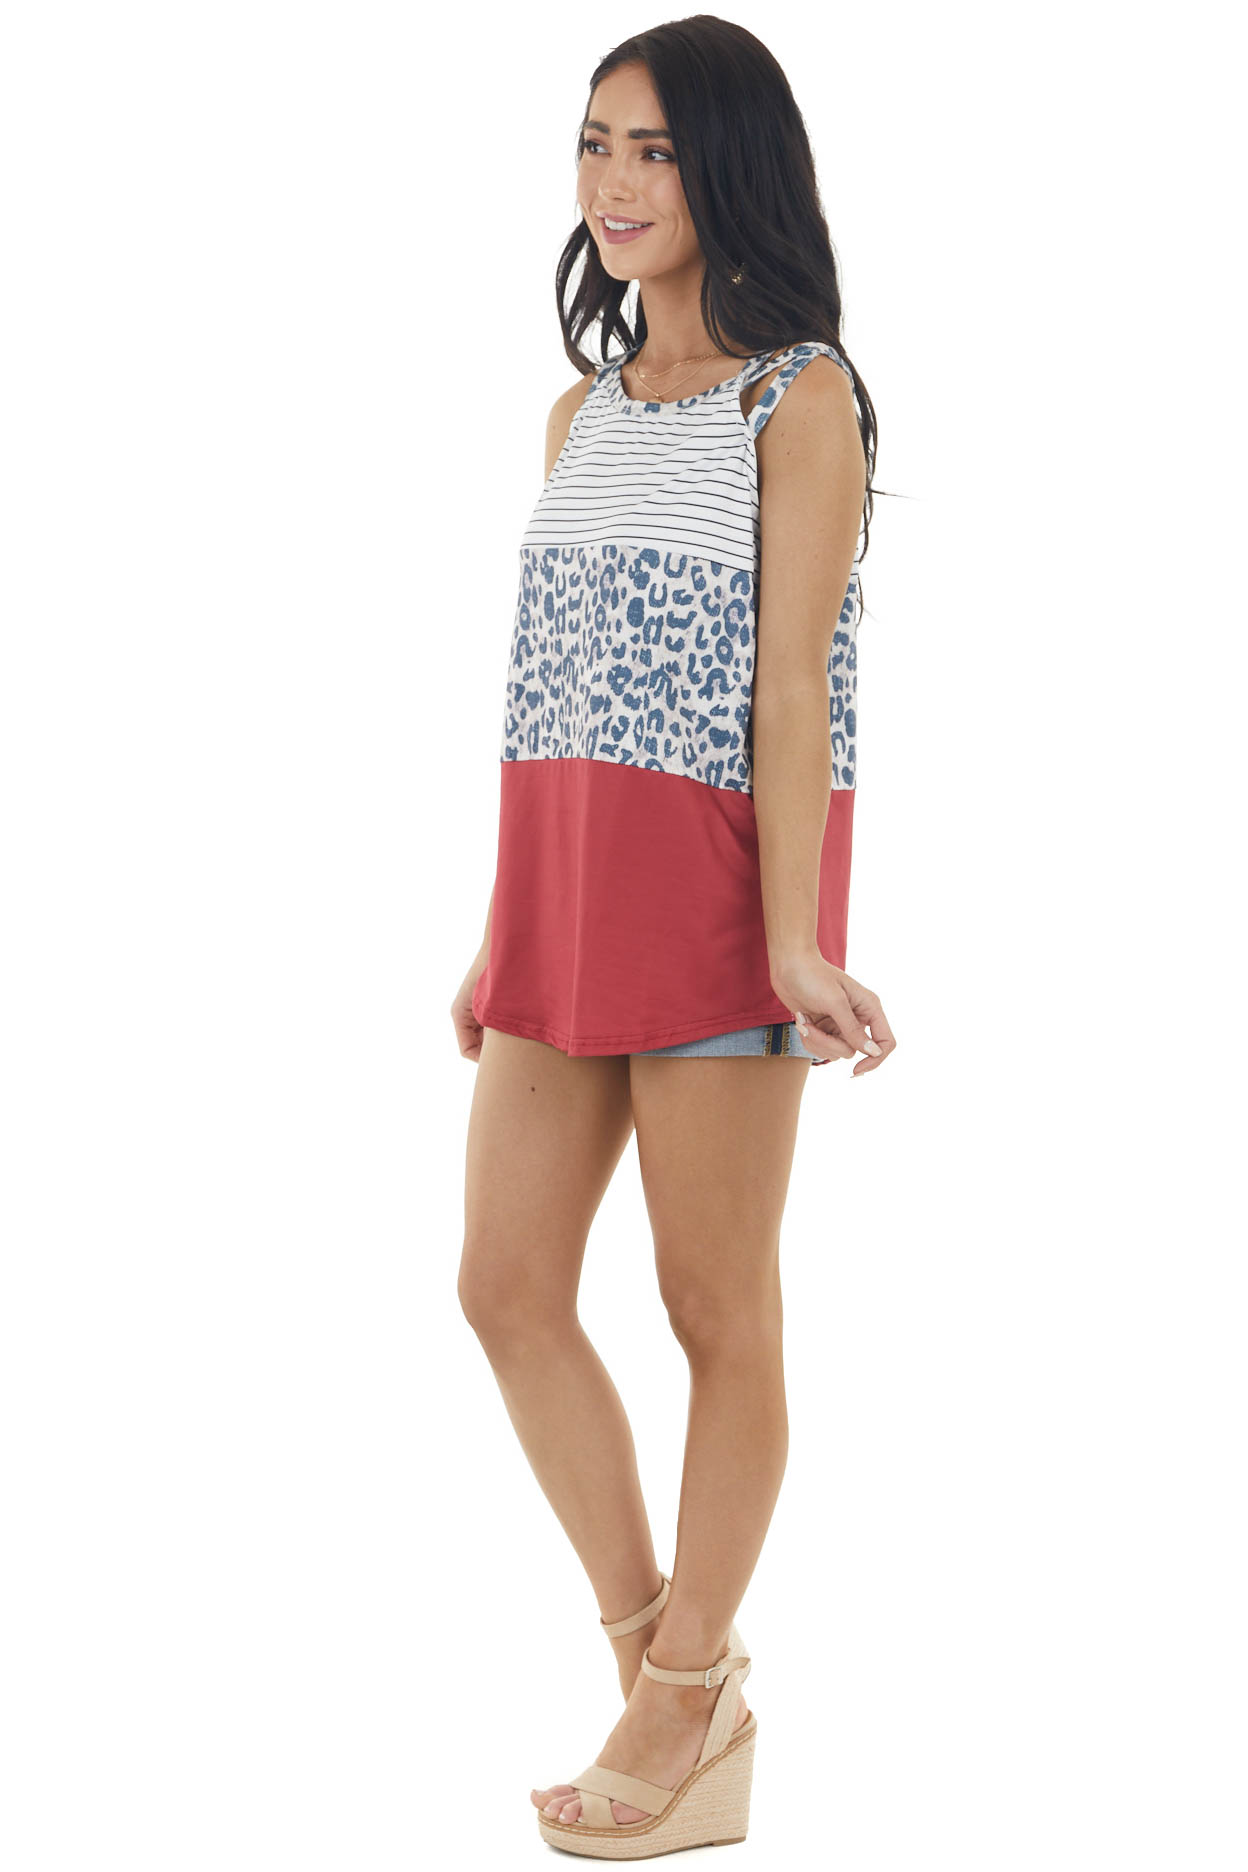 Hibiscus Multiprint Sleeveless Knit Top with Rounded Hem